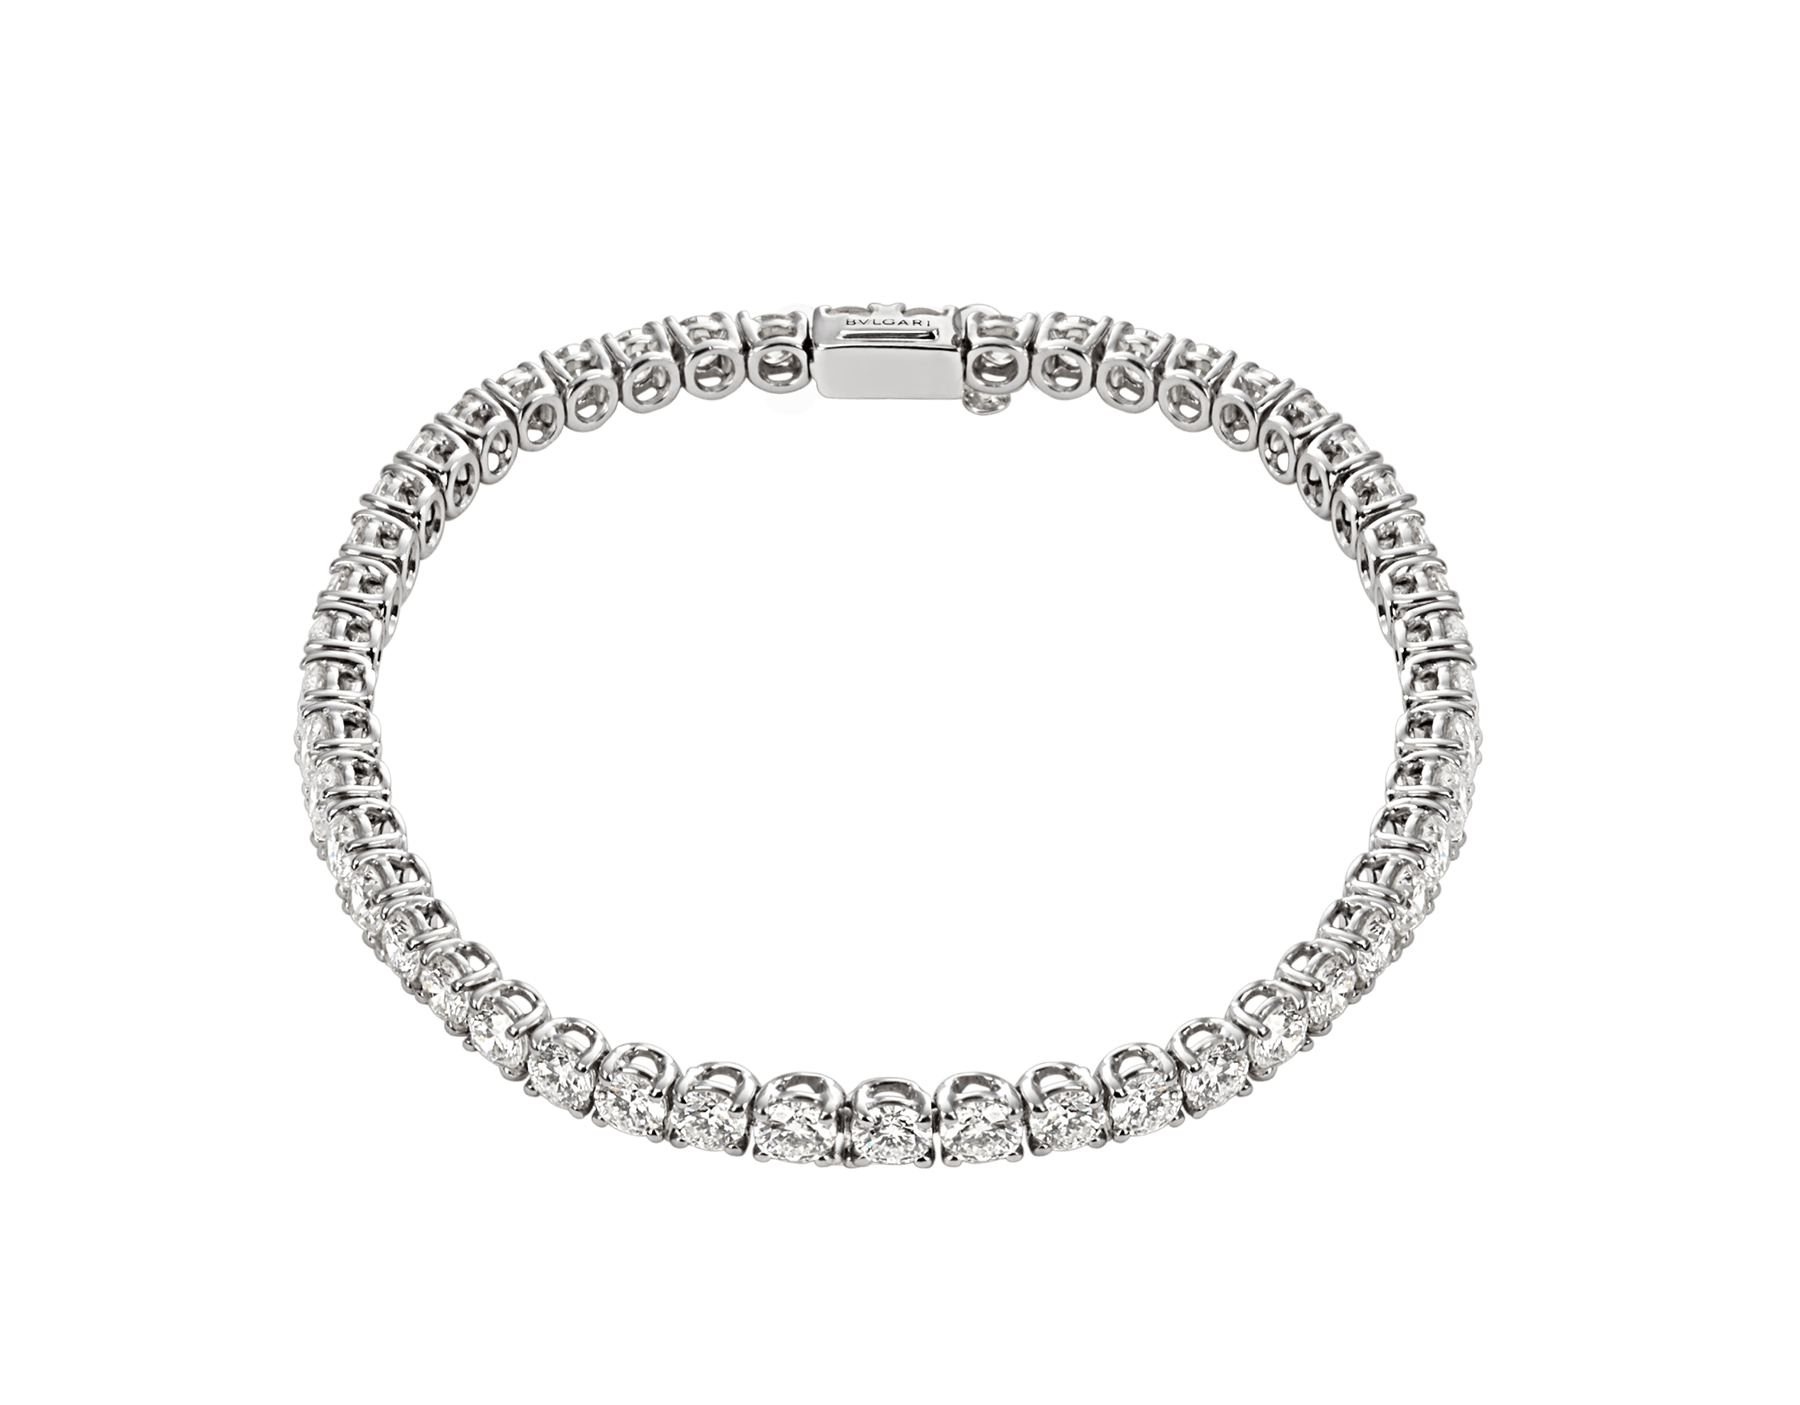 Bracelet tennis Griffe en or blanc 18 K serti de diamants ronds taille brillant BR852870 image 1